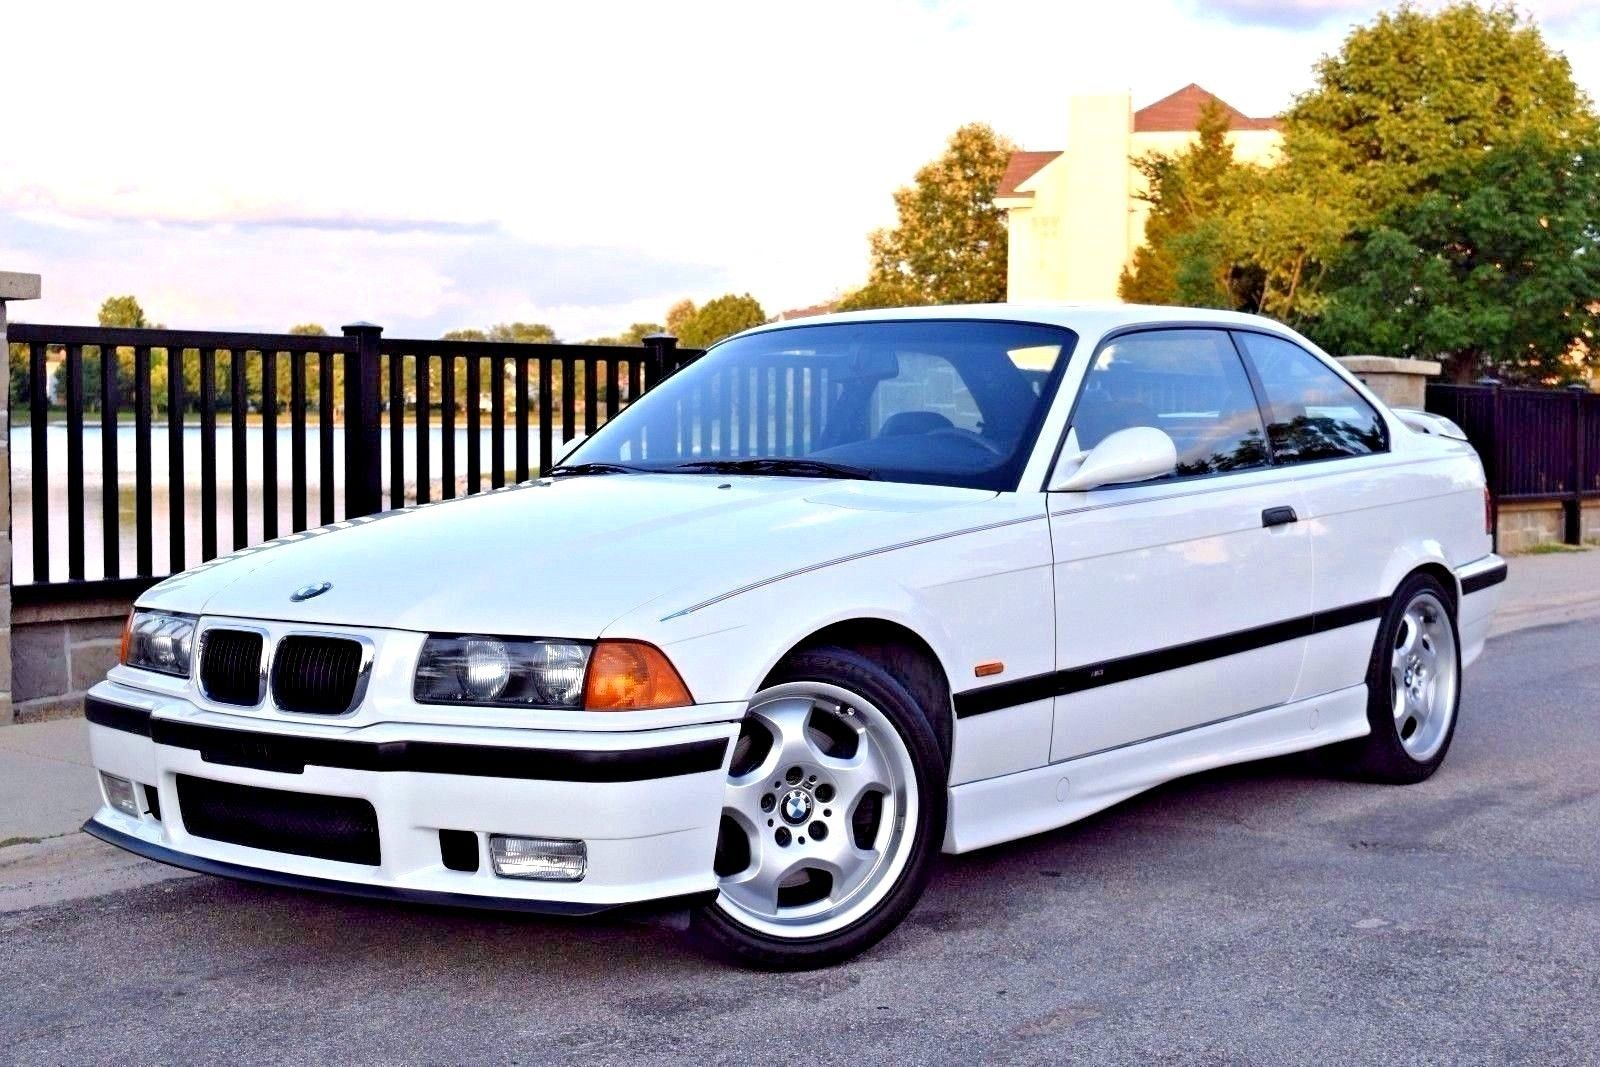 Awesome Amazing 1999 BMW M3 1999 BMW M3 Coupe Alpine White/Black Vader  Seats 100% Stock Immaculate 35k Miles 2018